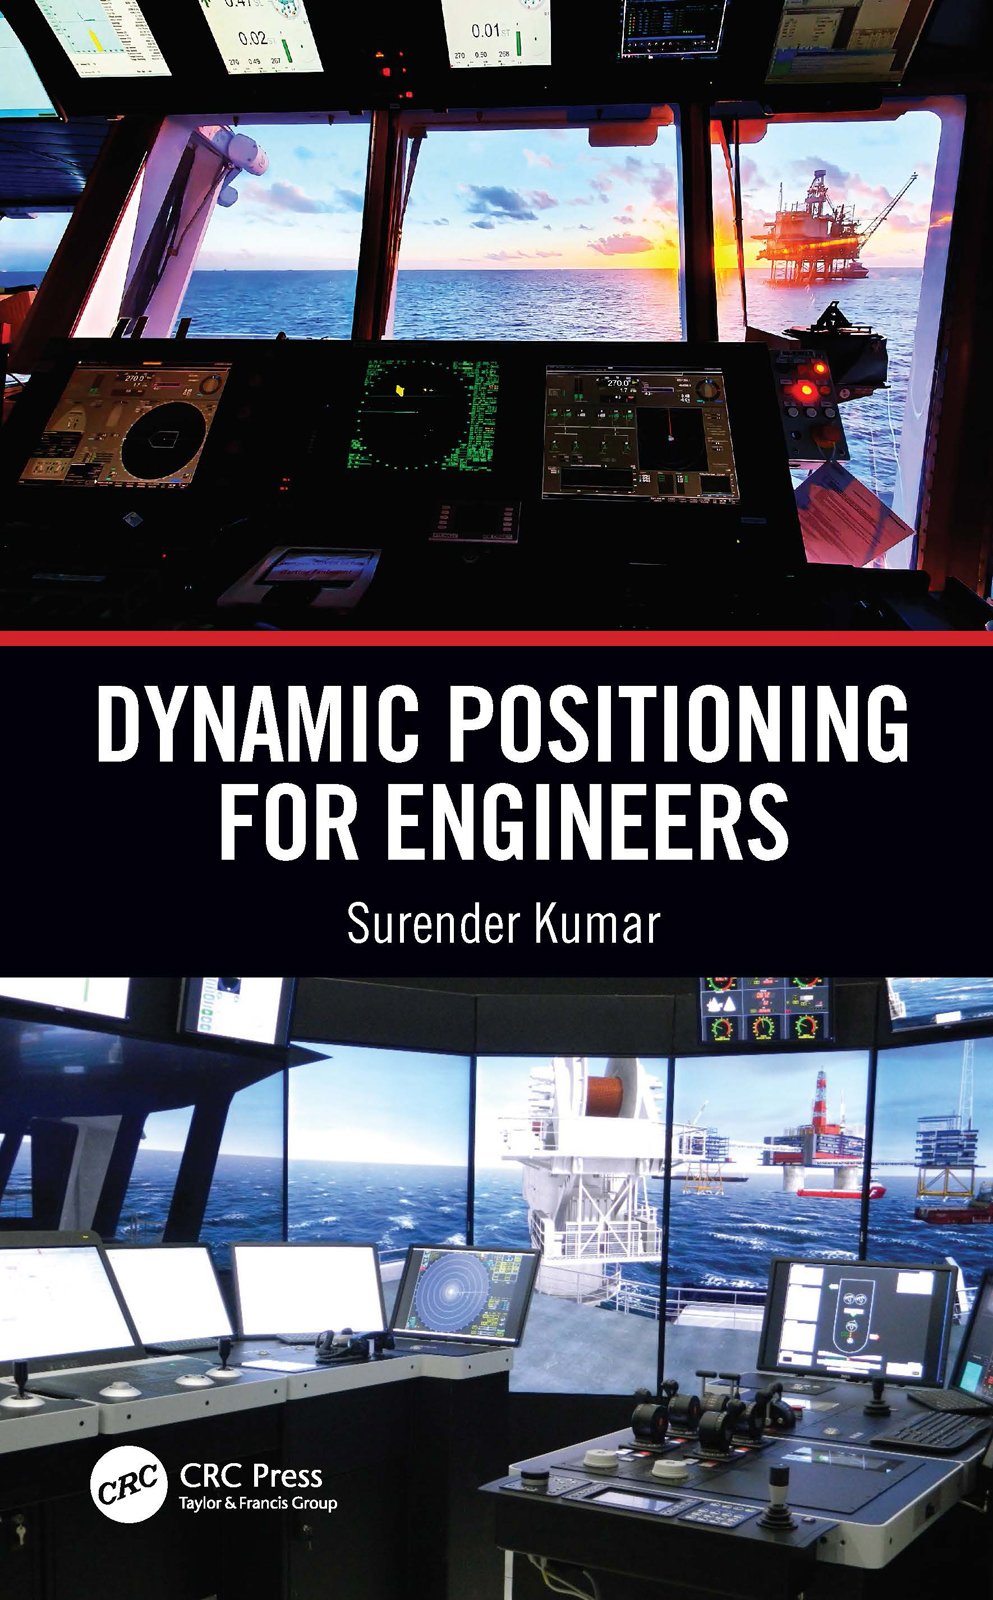 Historical Background to Development of Dynamic Positioning